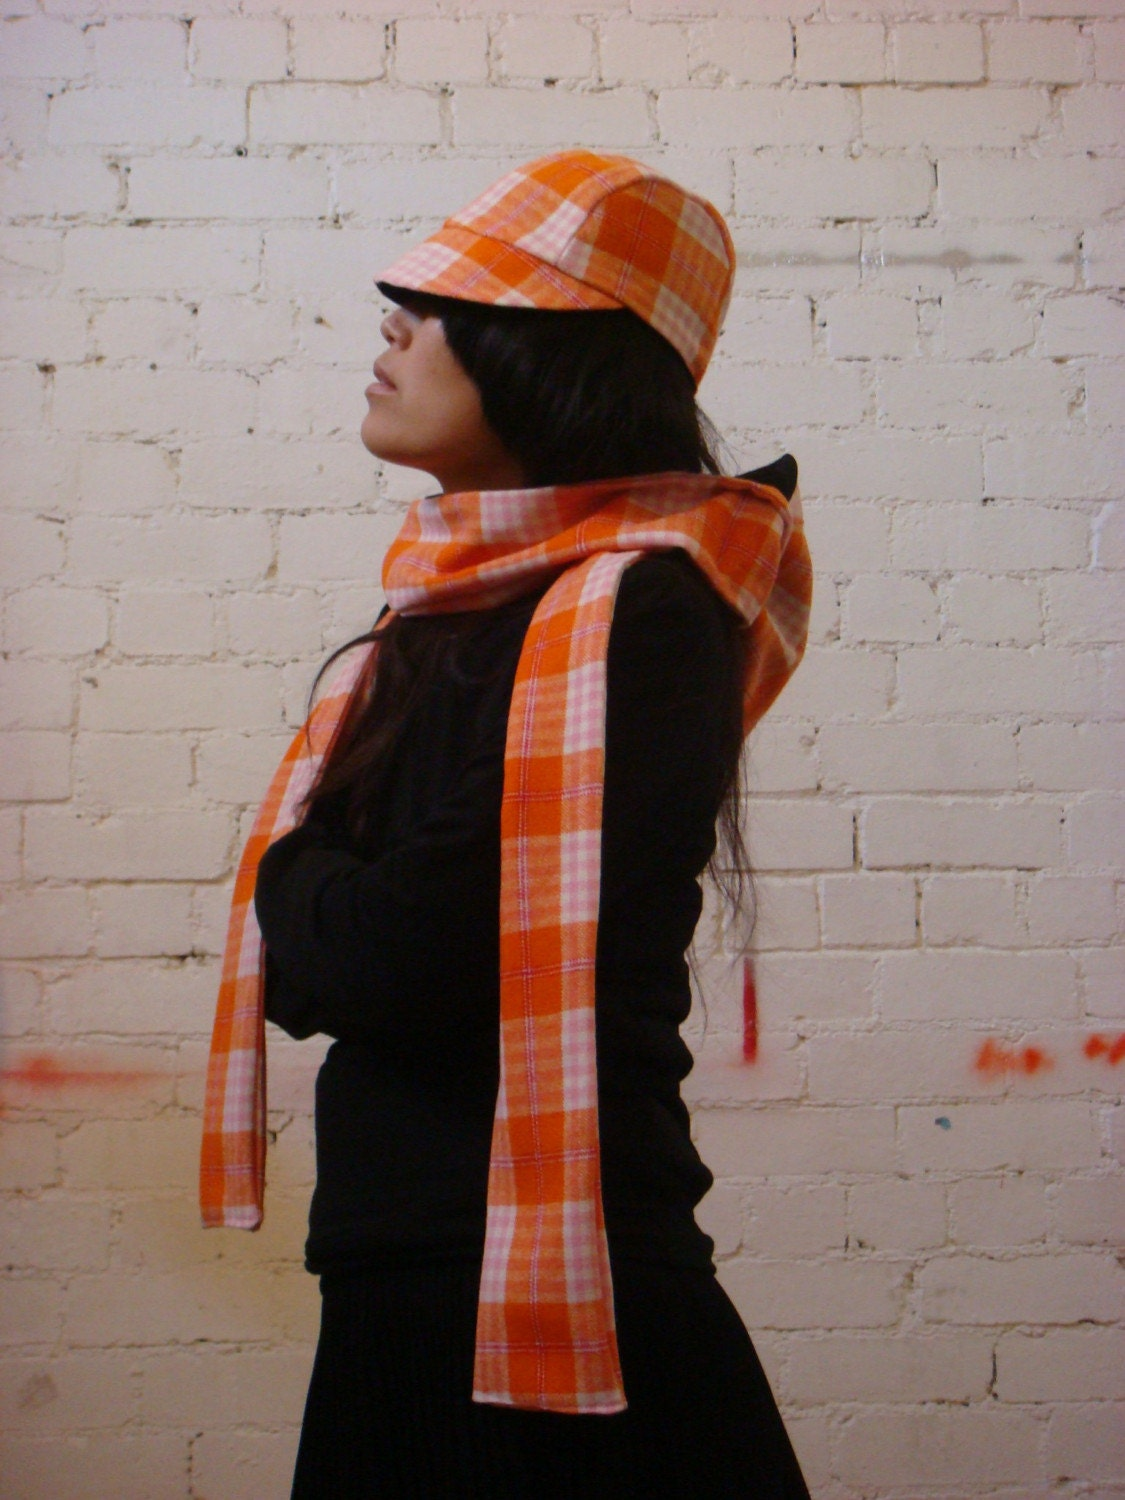 Reversible Black/ Orange, Pink, White Check Hat - FREE SHIPPING WORLDWIDE - FREE GIFT - BESTSELLER